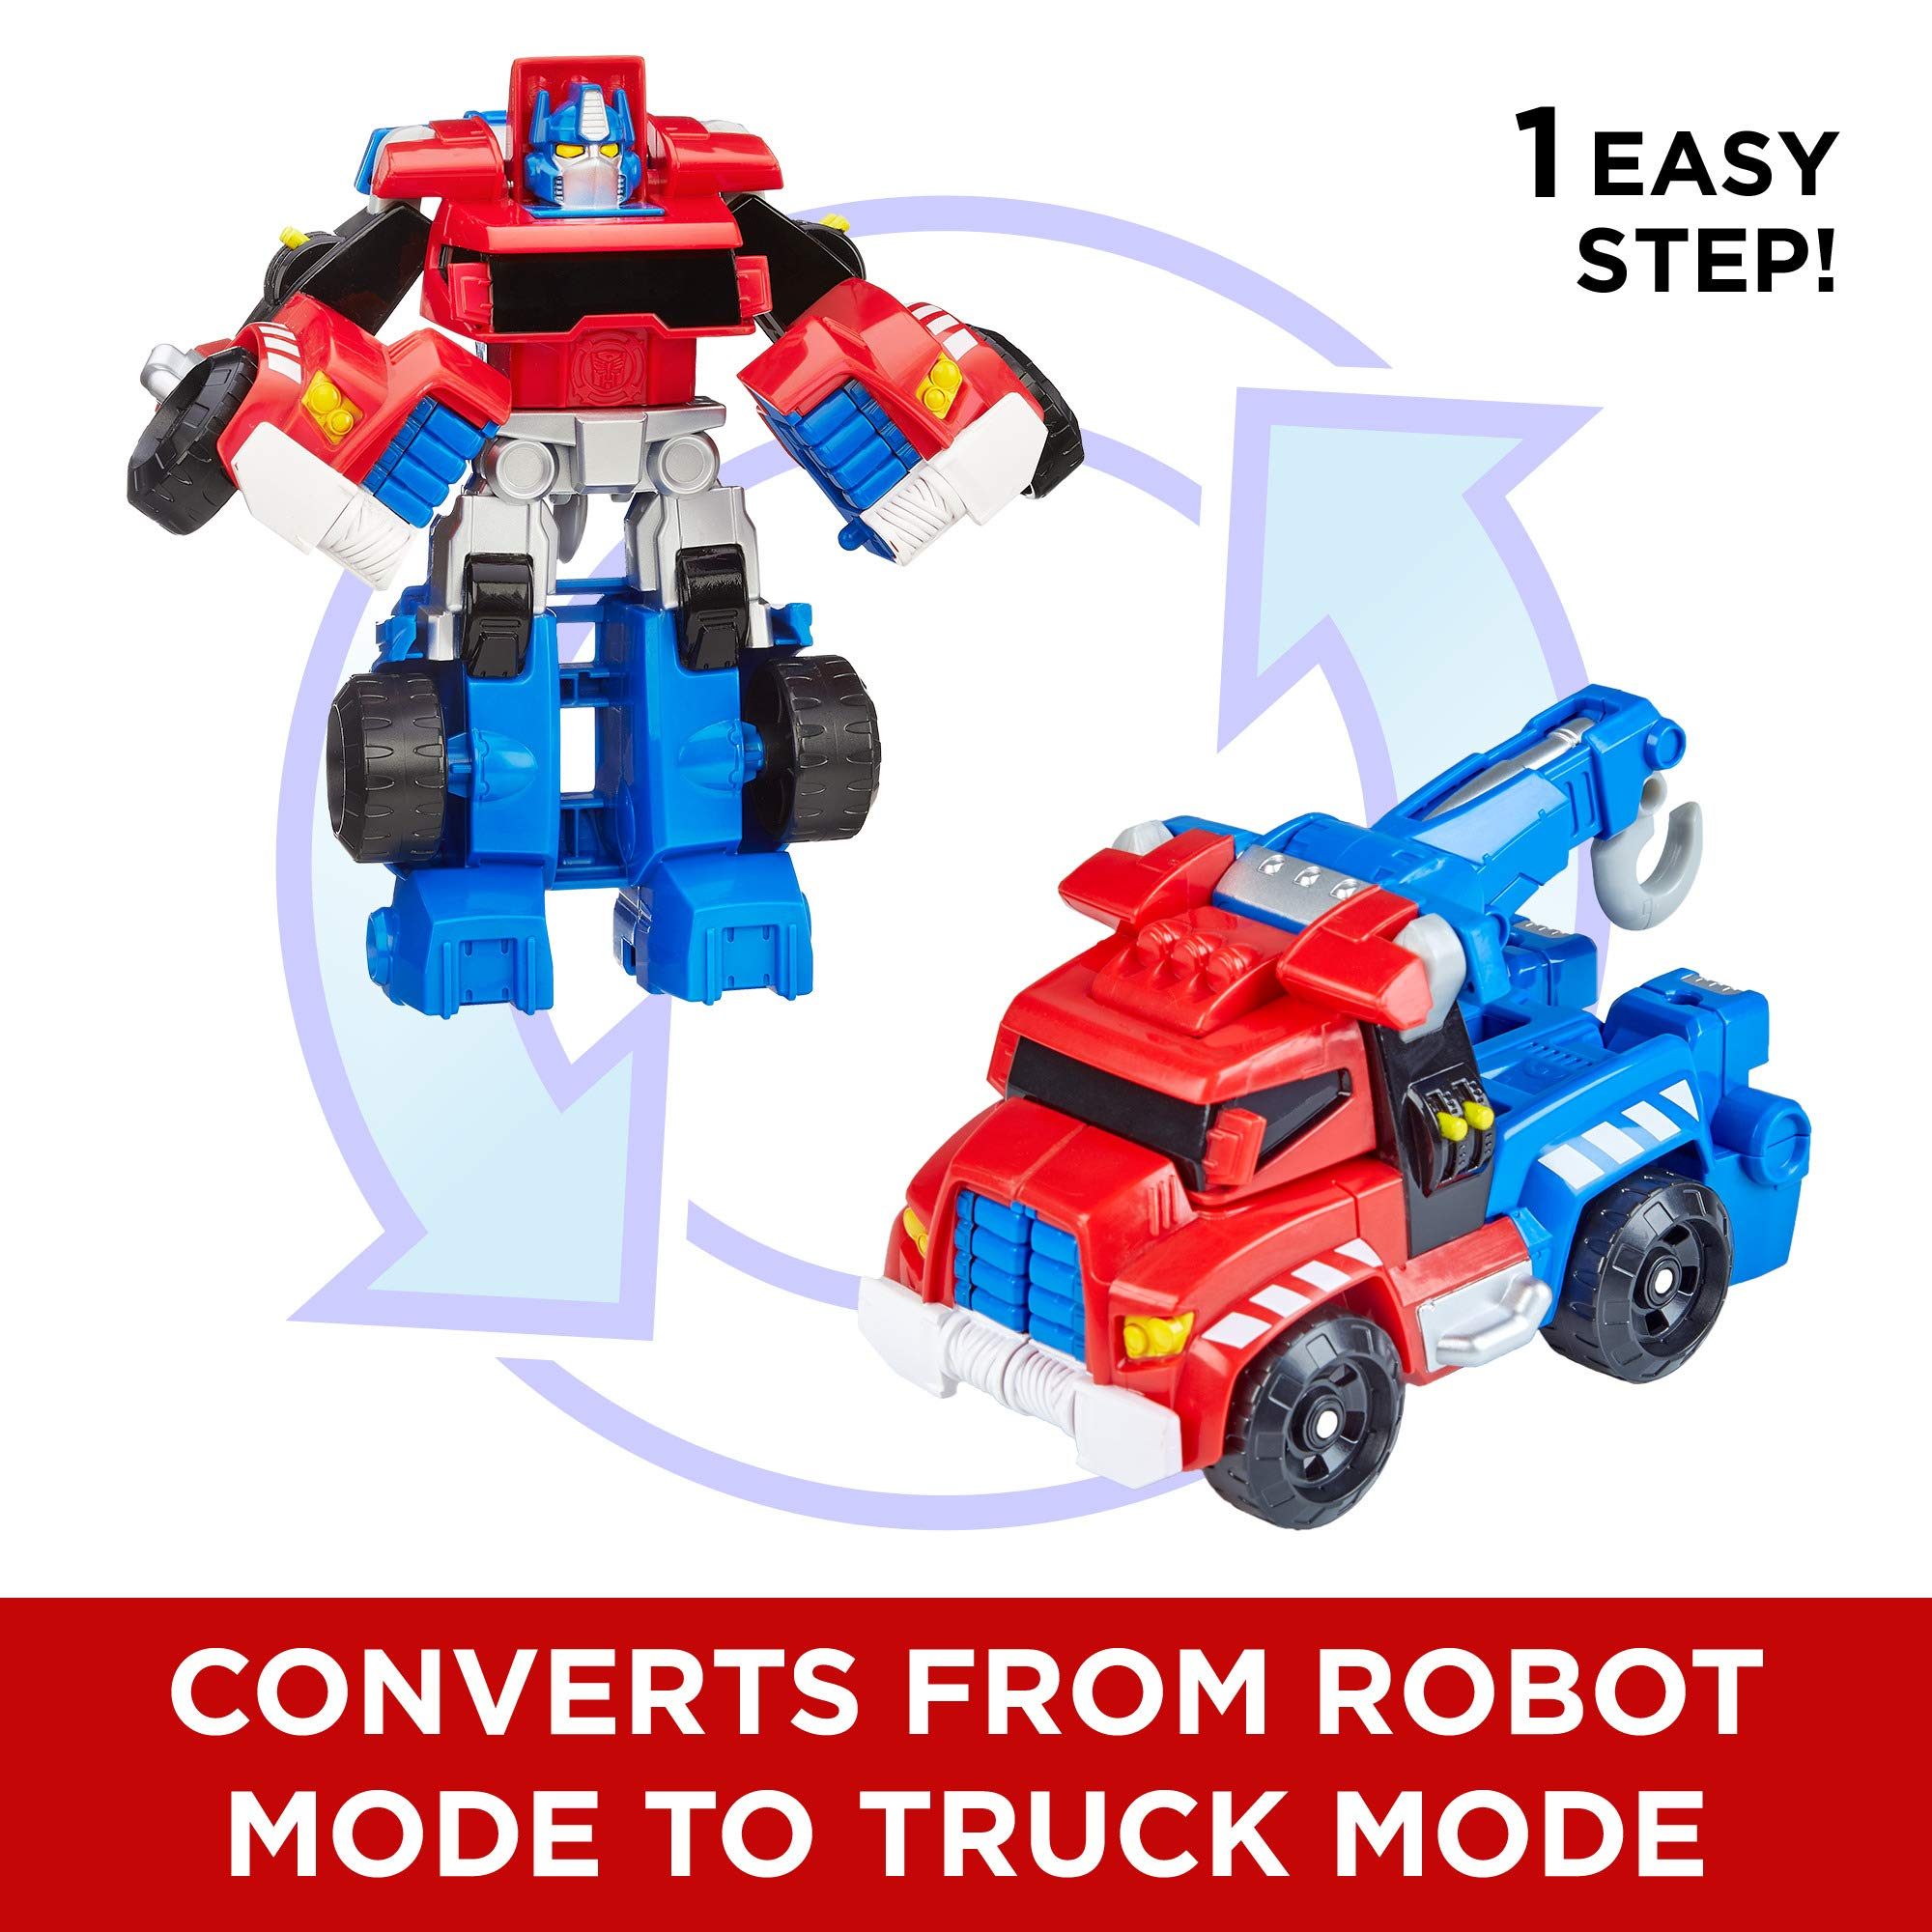 Playskool Heroes Transformers Rescue Bots Optimus Prime Action Figure, Ages 3-7 (Amazon Exclusive) by Playskool (Image #4)